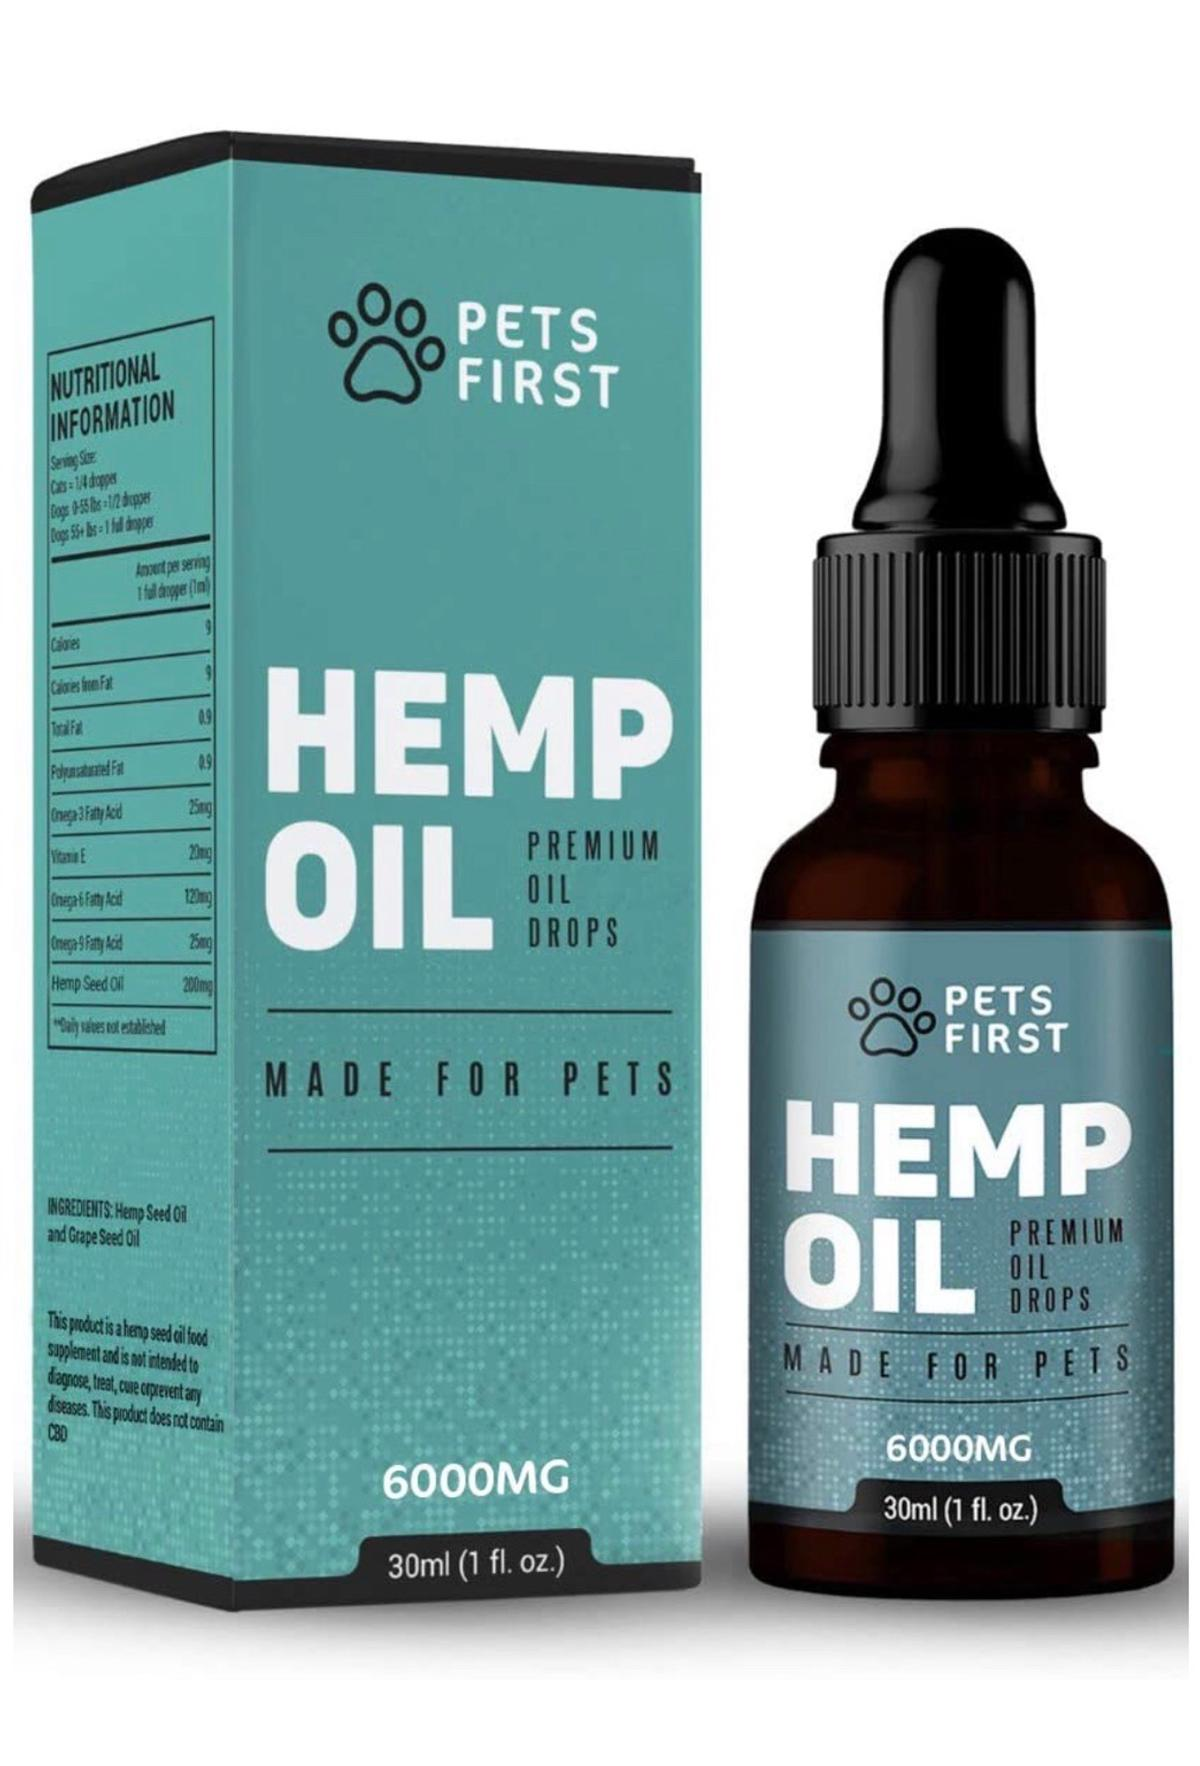 Hemp oil brand new